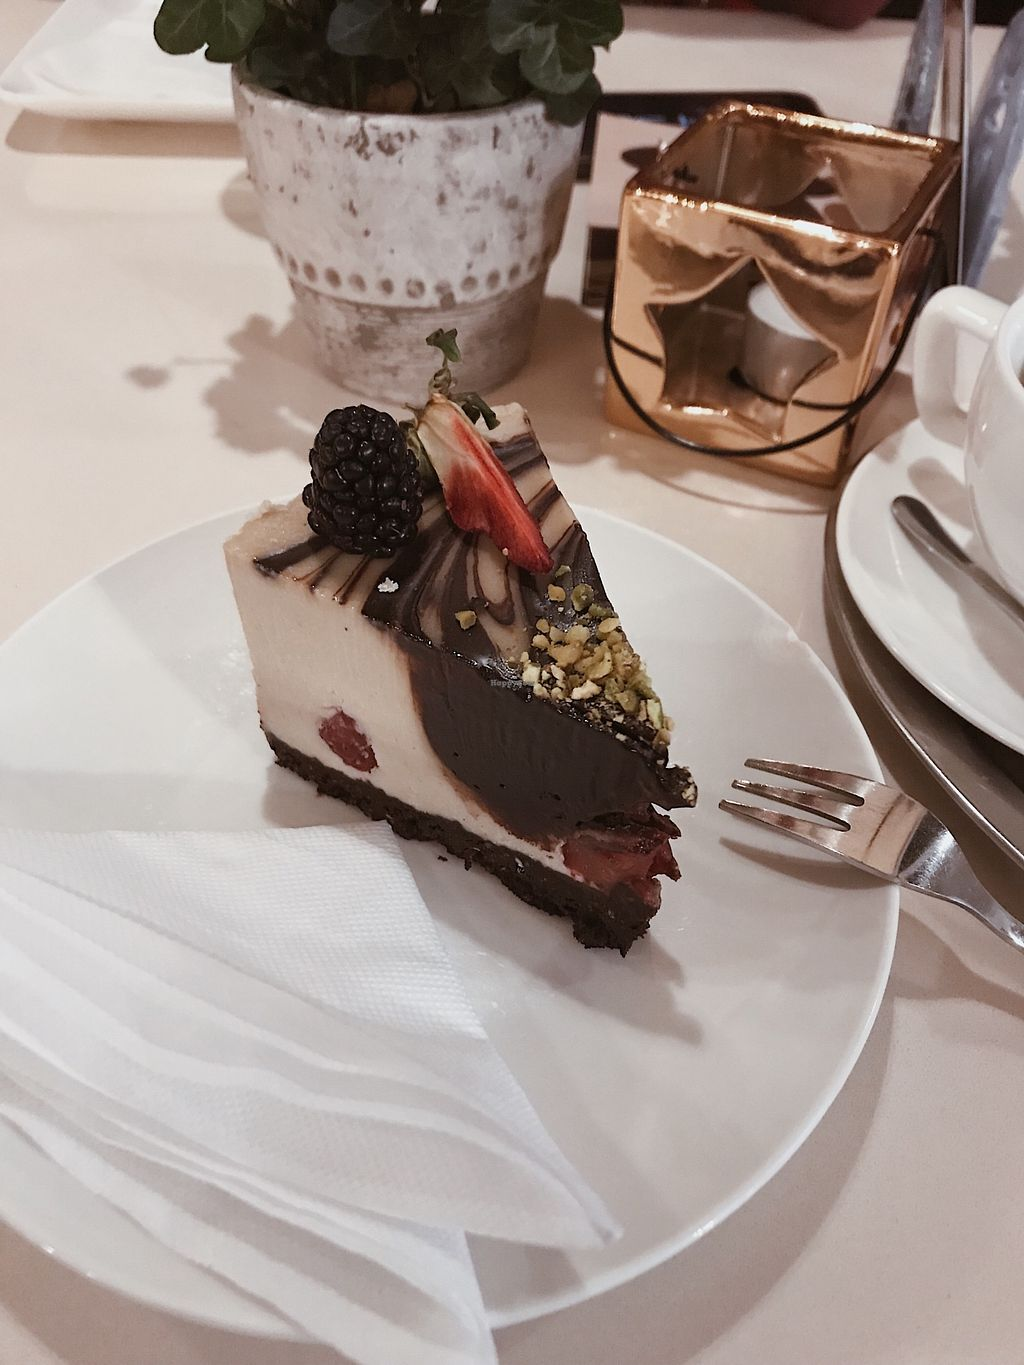 """Photo of Cafe Gusto  by <a href=""""/members/profile/Blon%C4%8Fav%C3%A1D%C3%A1%C5%A1ka"""">BlonďaváDáška</a> <br/>Raw vegan cake with dark chocolate and strawberries  tasteful  <br/> March 15, 2018  - <a href='/contact/abuse/image/94951/371009'>Report</a>"""